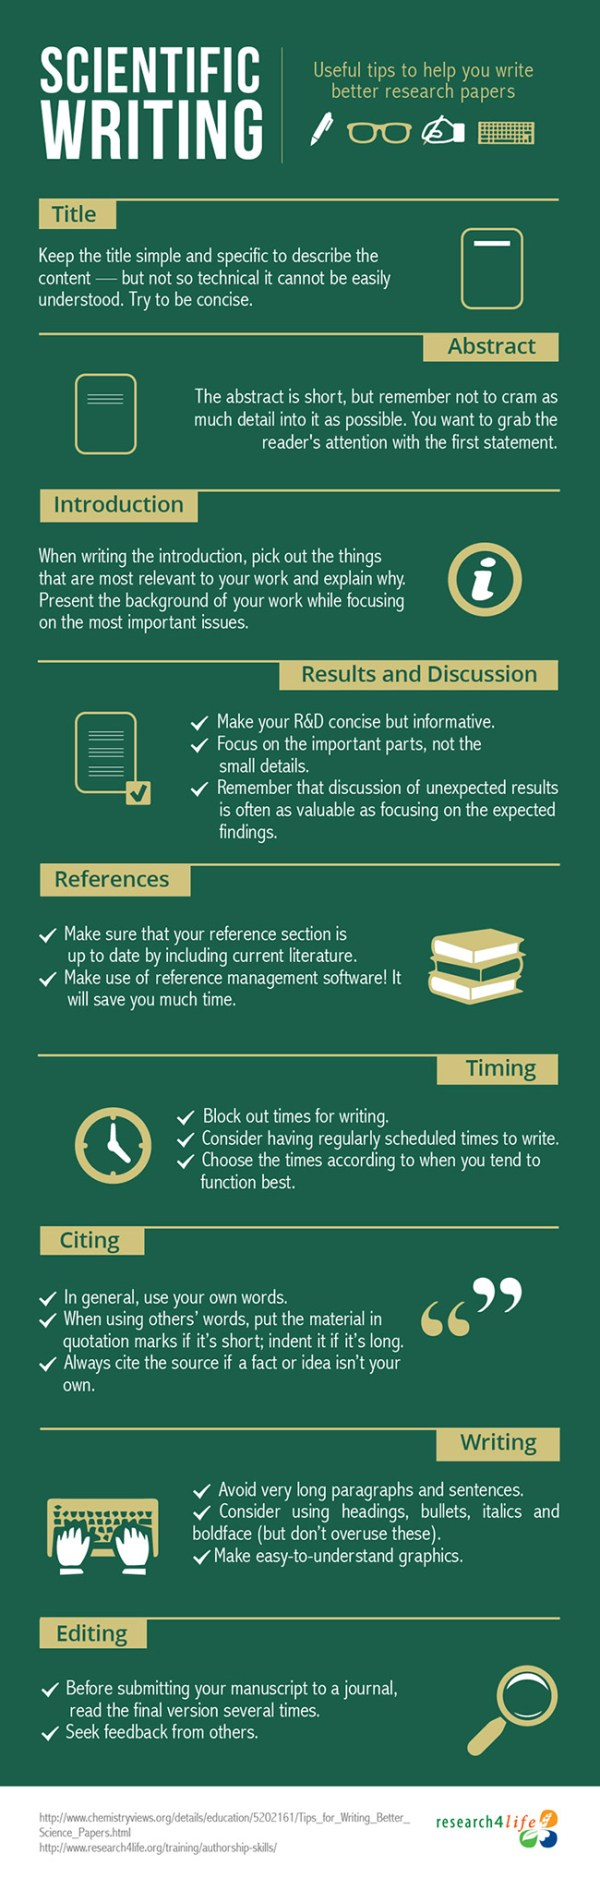 Tips for Writing Research Articles